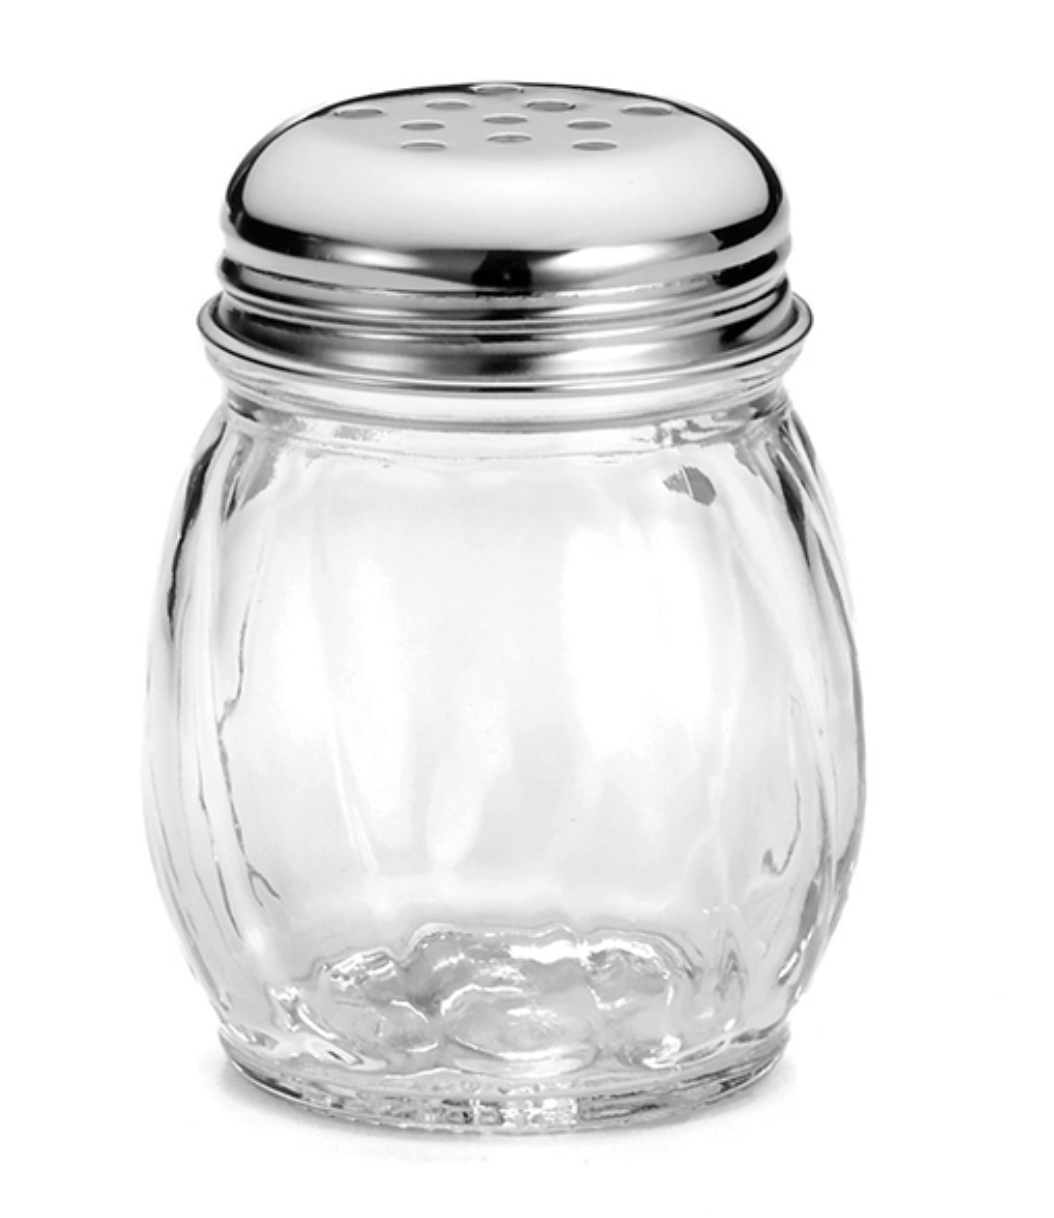 Cheese & Spice Shaker, 6oz